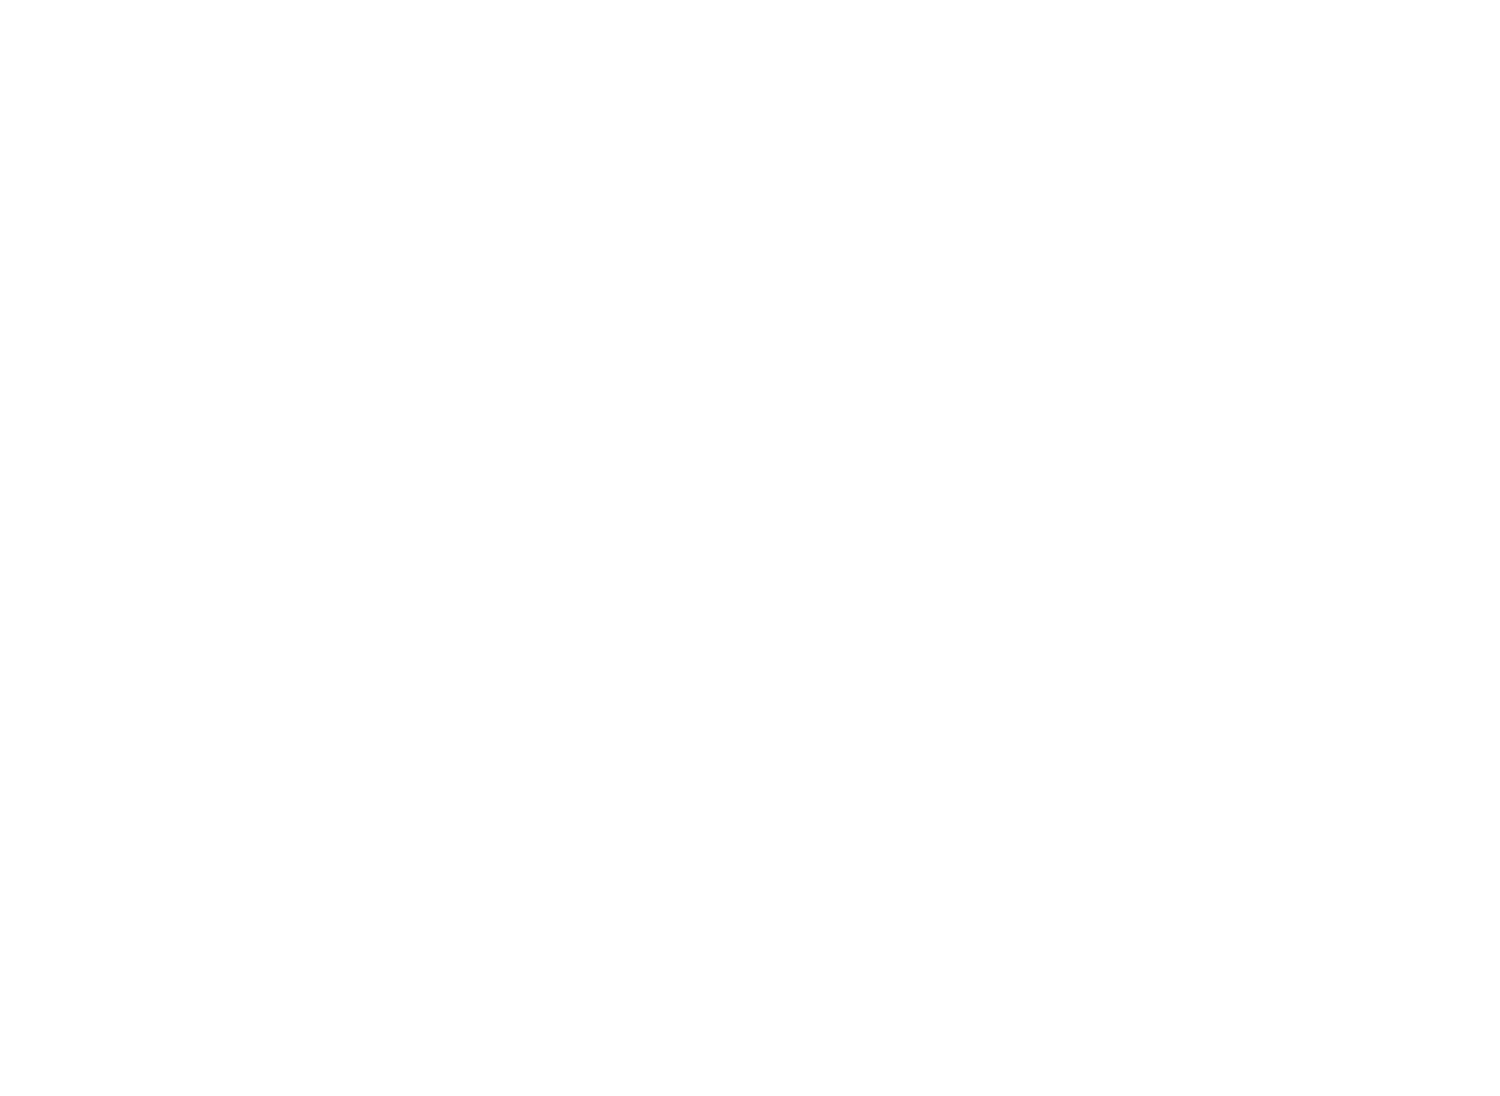 The Robyns Life Trust